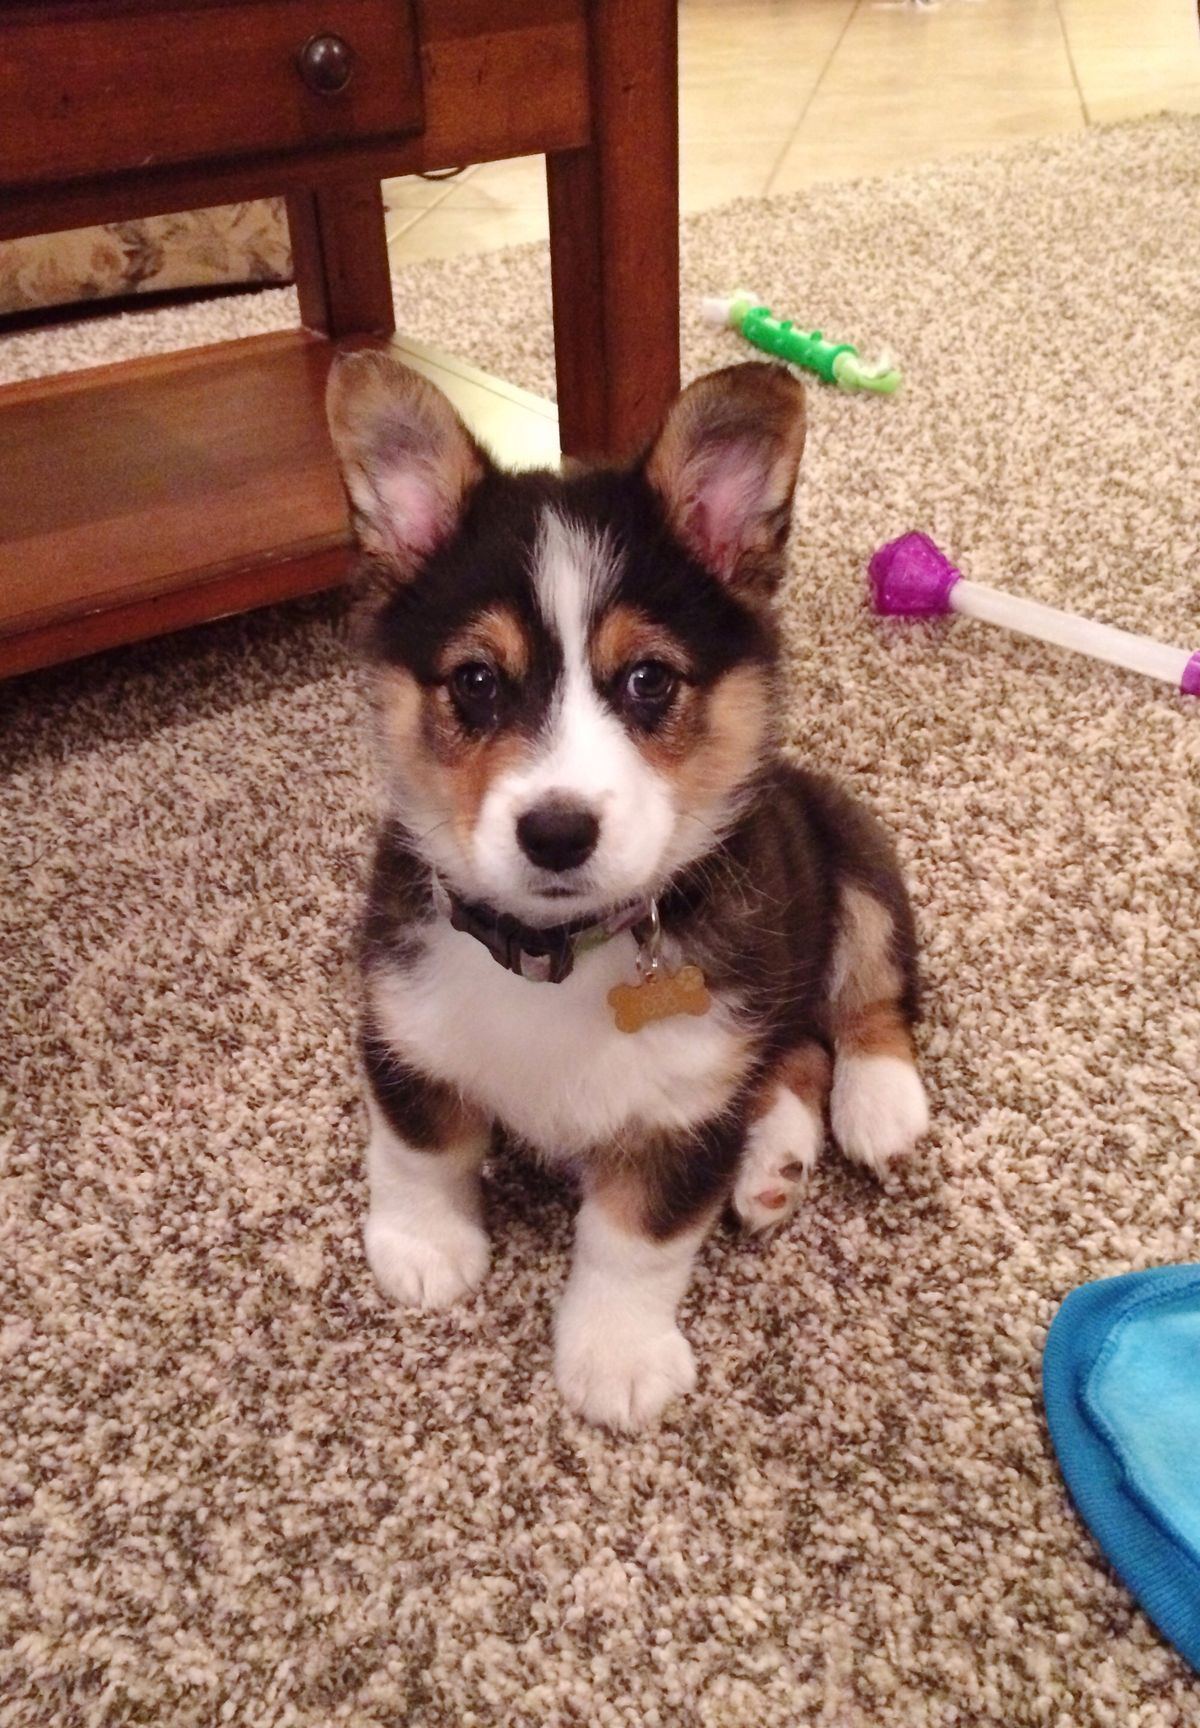 4c0b85e61411a3999e8259e76a3516a4 Jpg 1 200 1 728 Pixels Super Cute Puppies Cute Dogs Breeds Corgi Aussie Mix